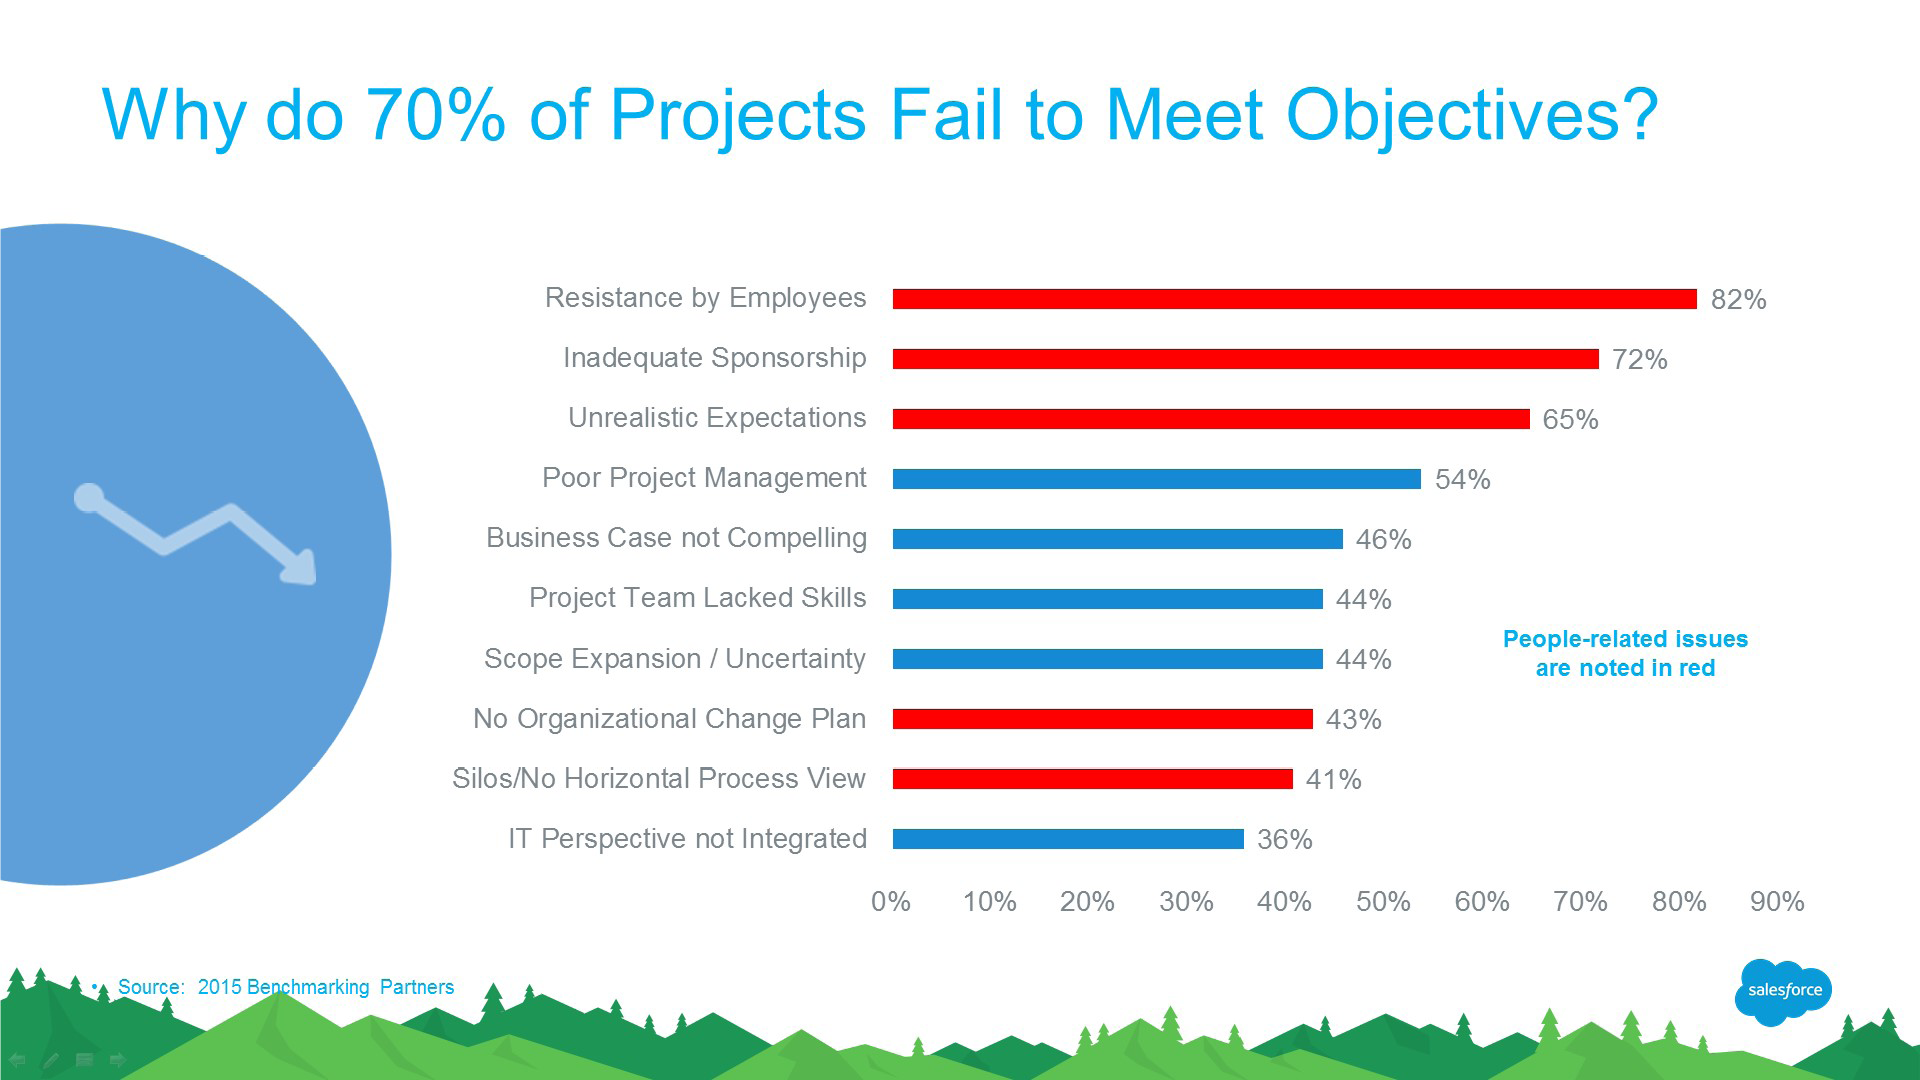 Why Do 70% of Projects Fail to Meet Objectives